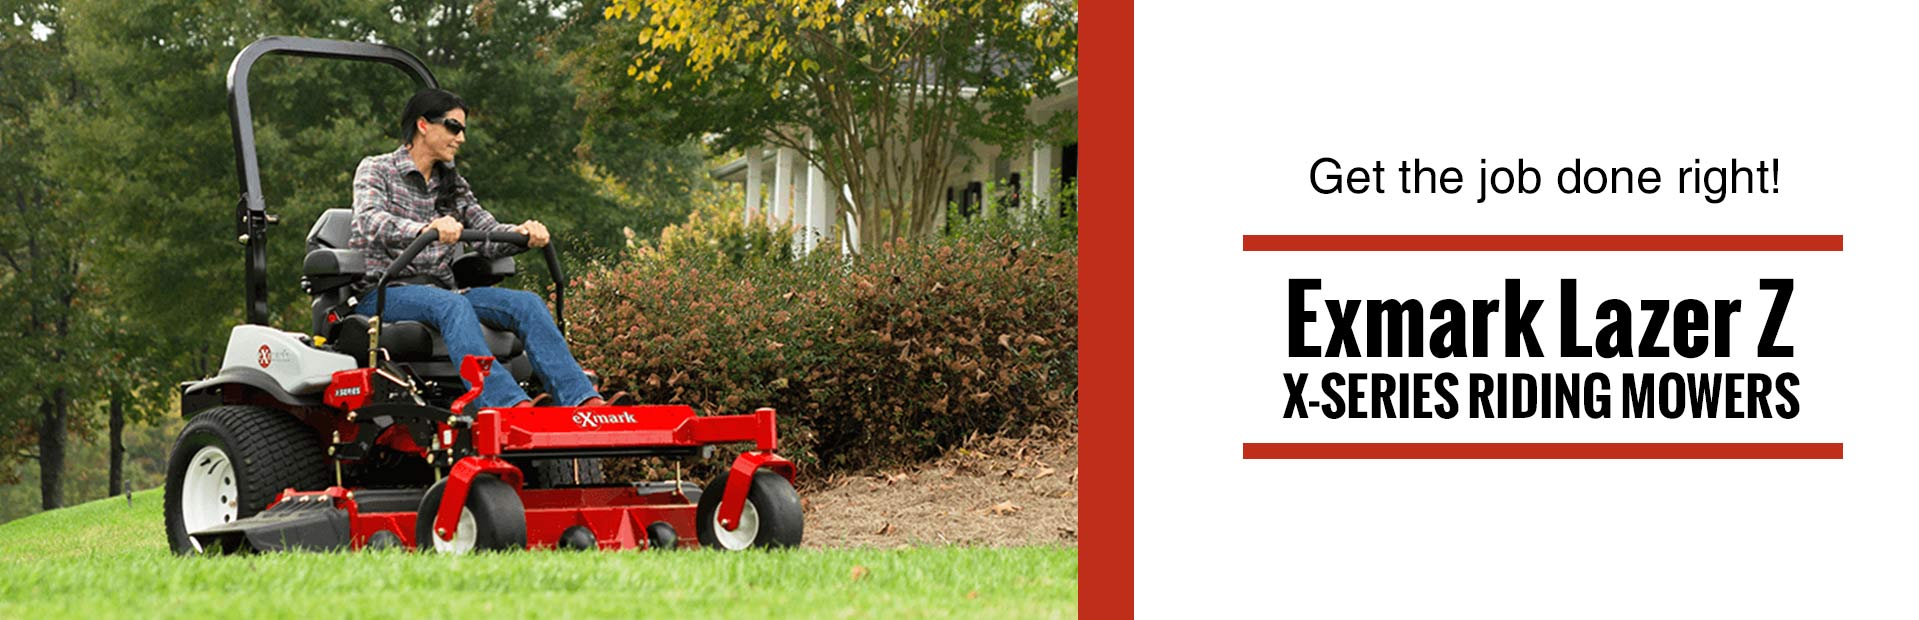 Exmark Lazer Z X-Series Riding Mowers: Click here to view the models.